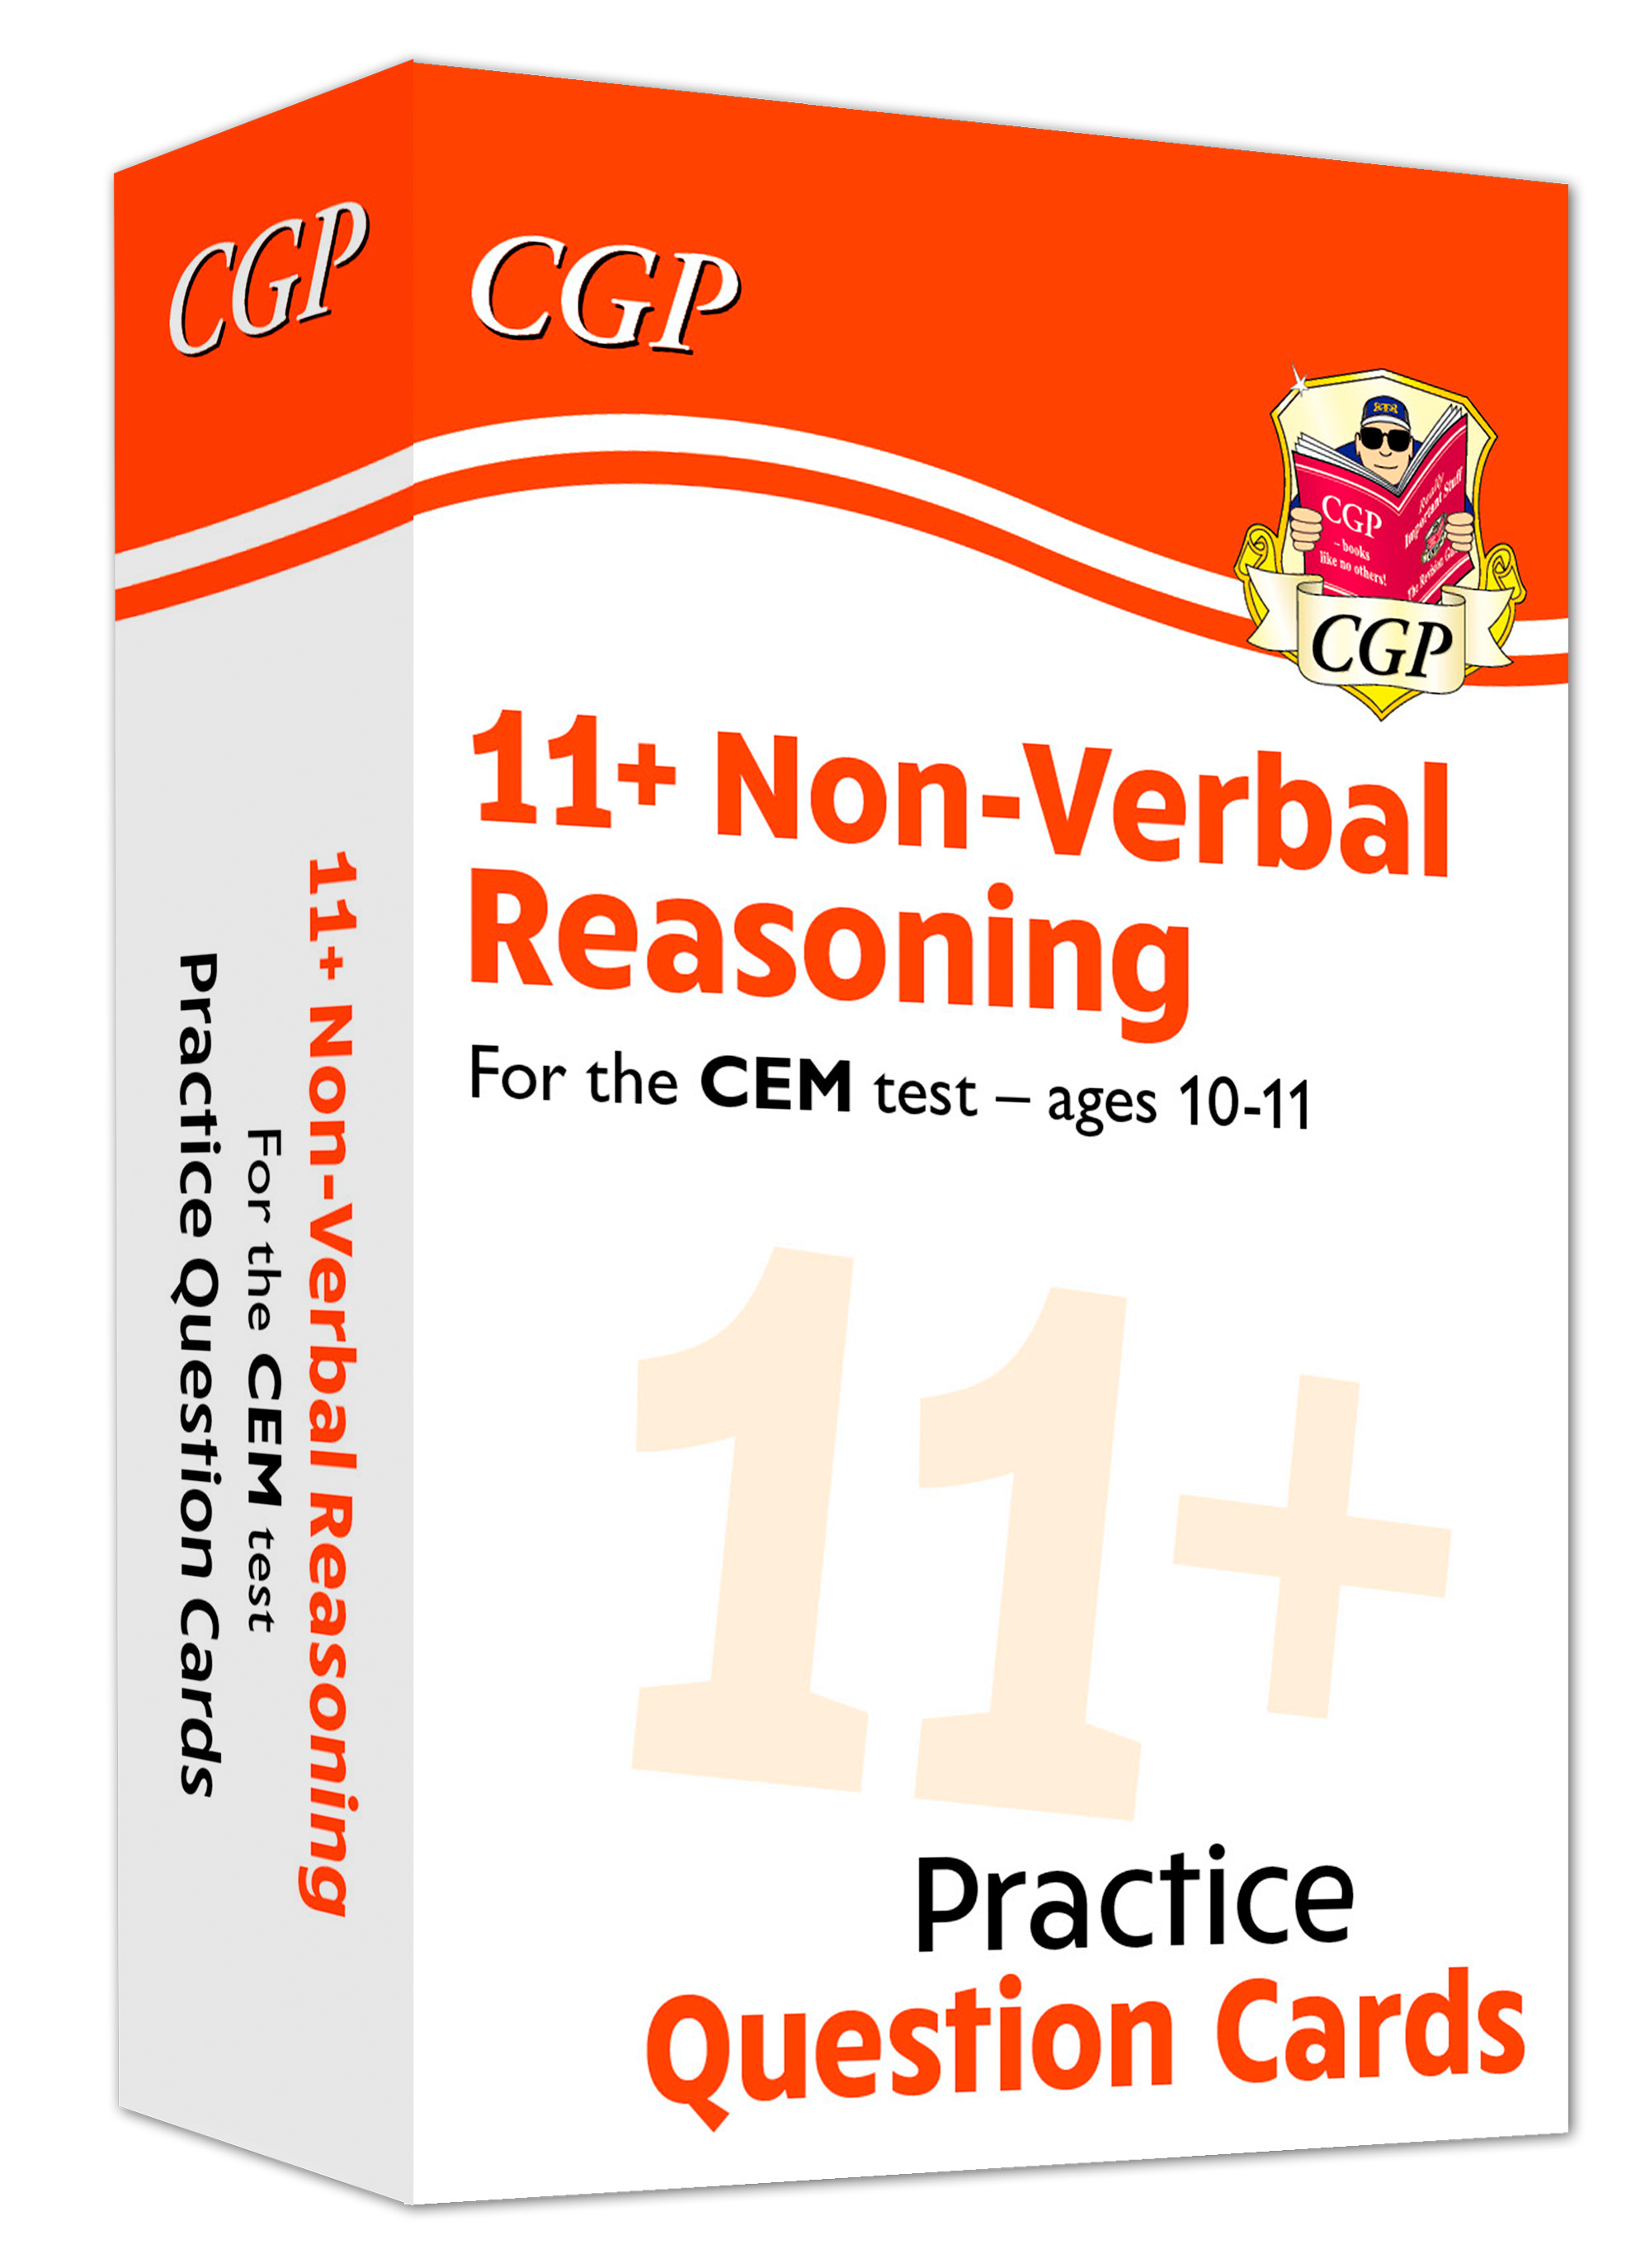 N6FDE1 - New 11+ CEM Non-Verbal Reasoning Practice Question Cards - Ages 10-11